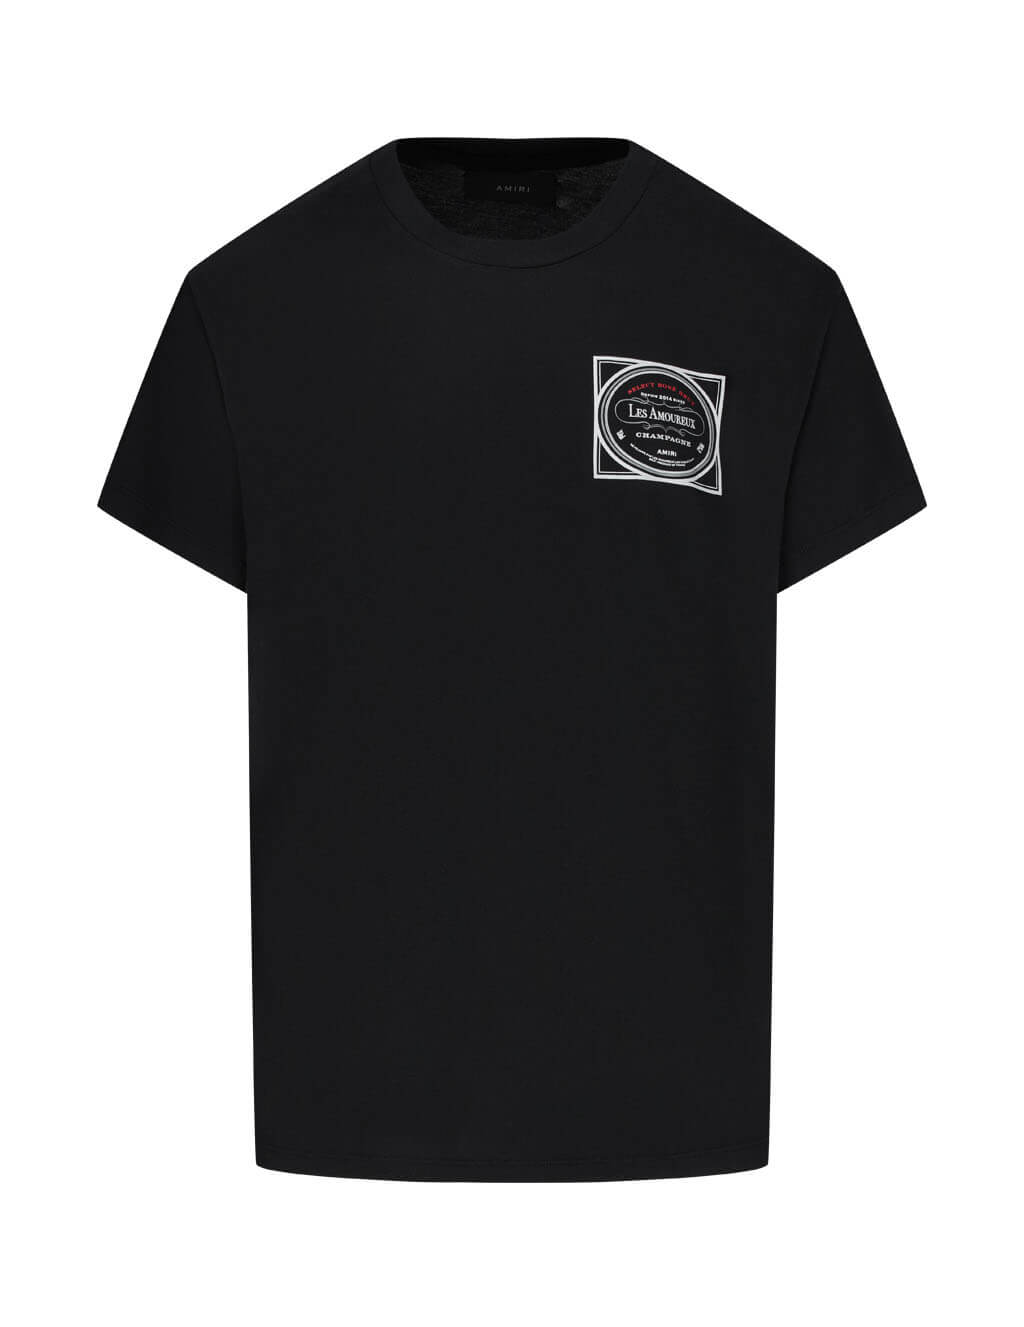 Men's AMIRI Les Amoureux Label Tee in Black. F0M03237CJBLK